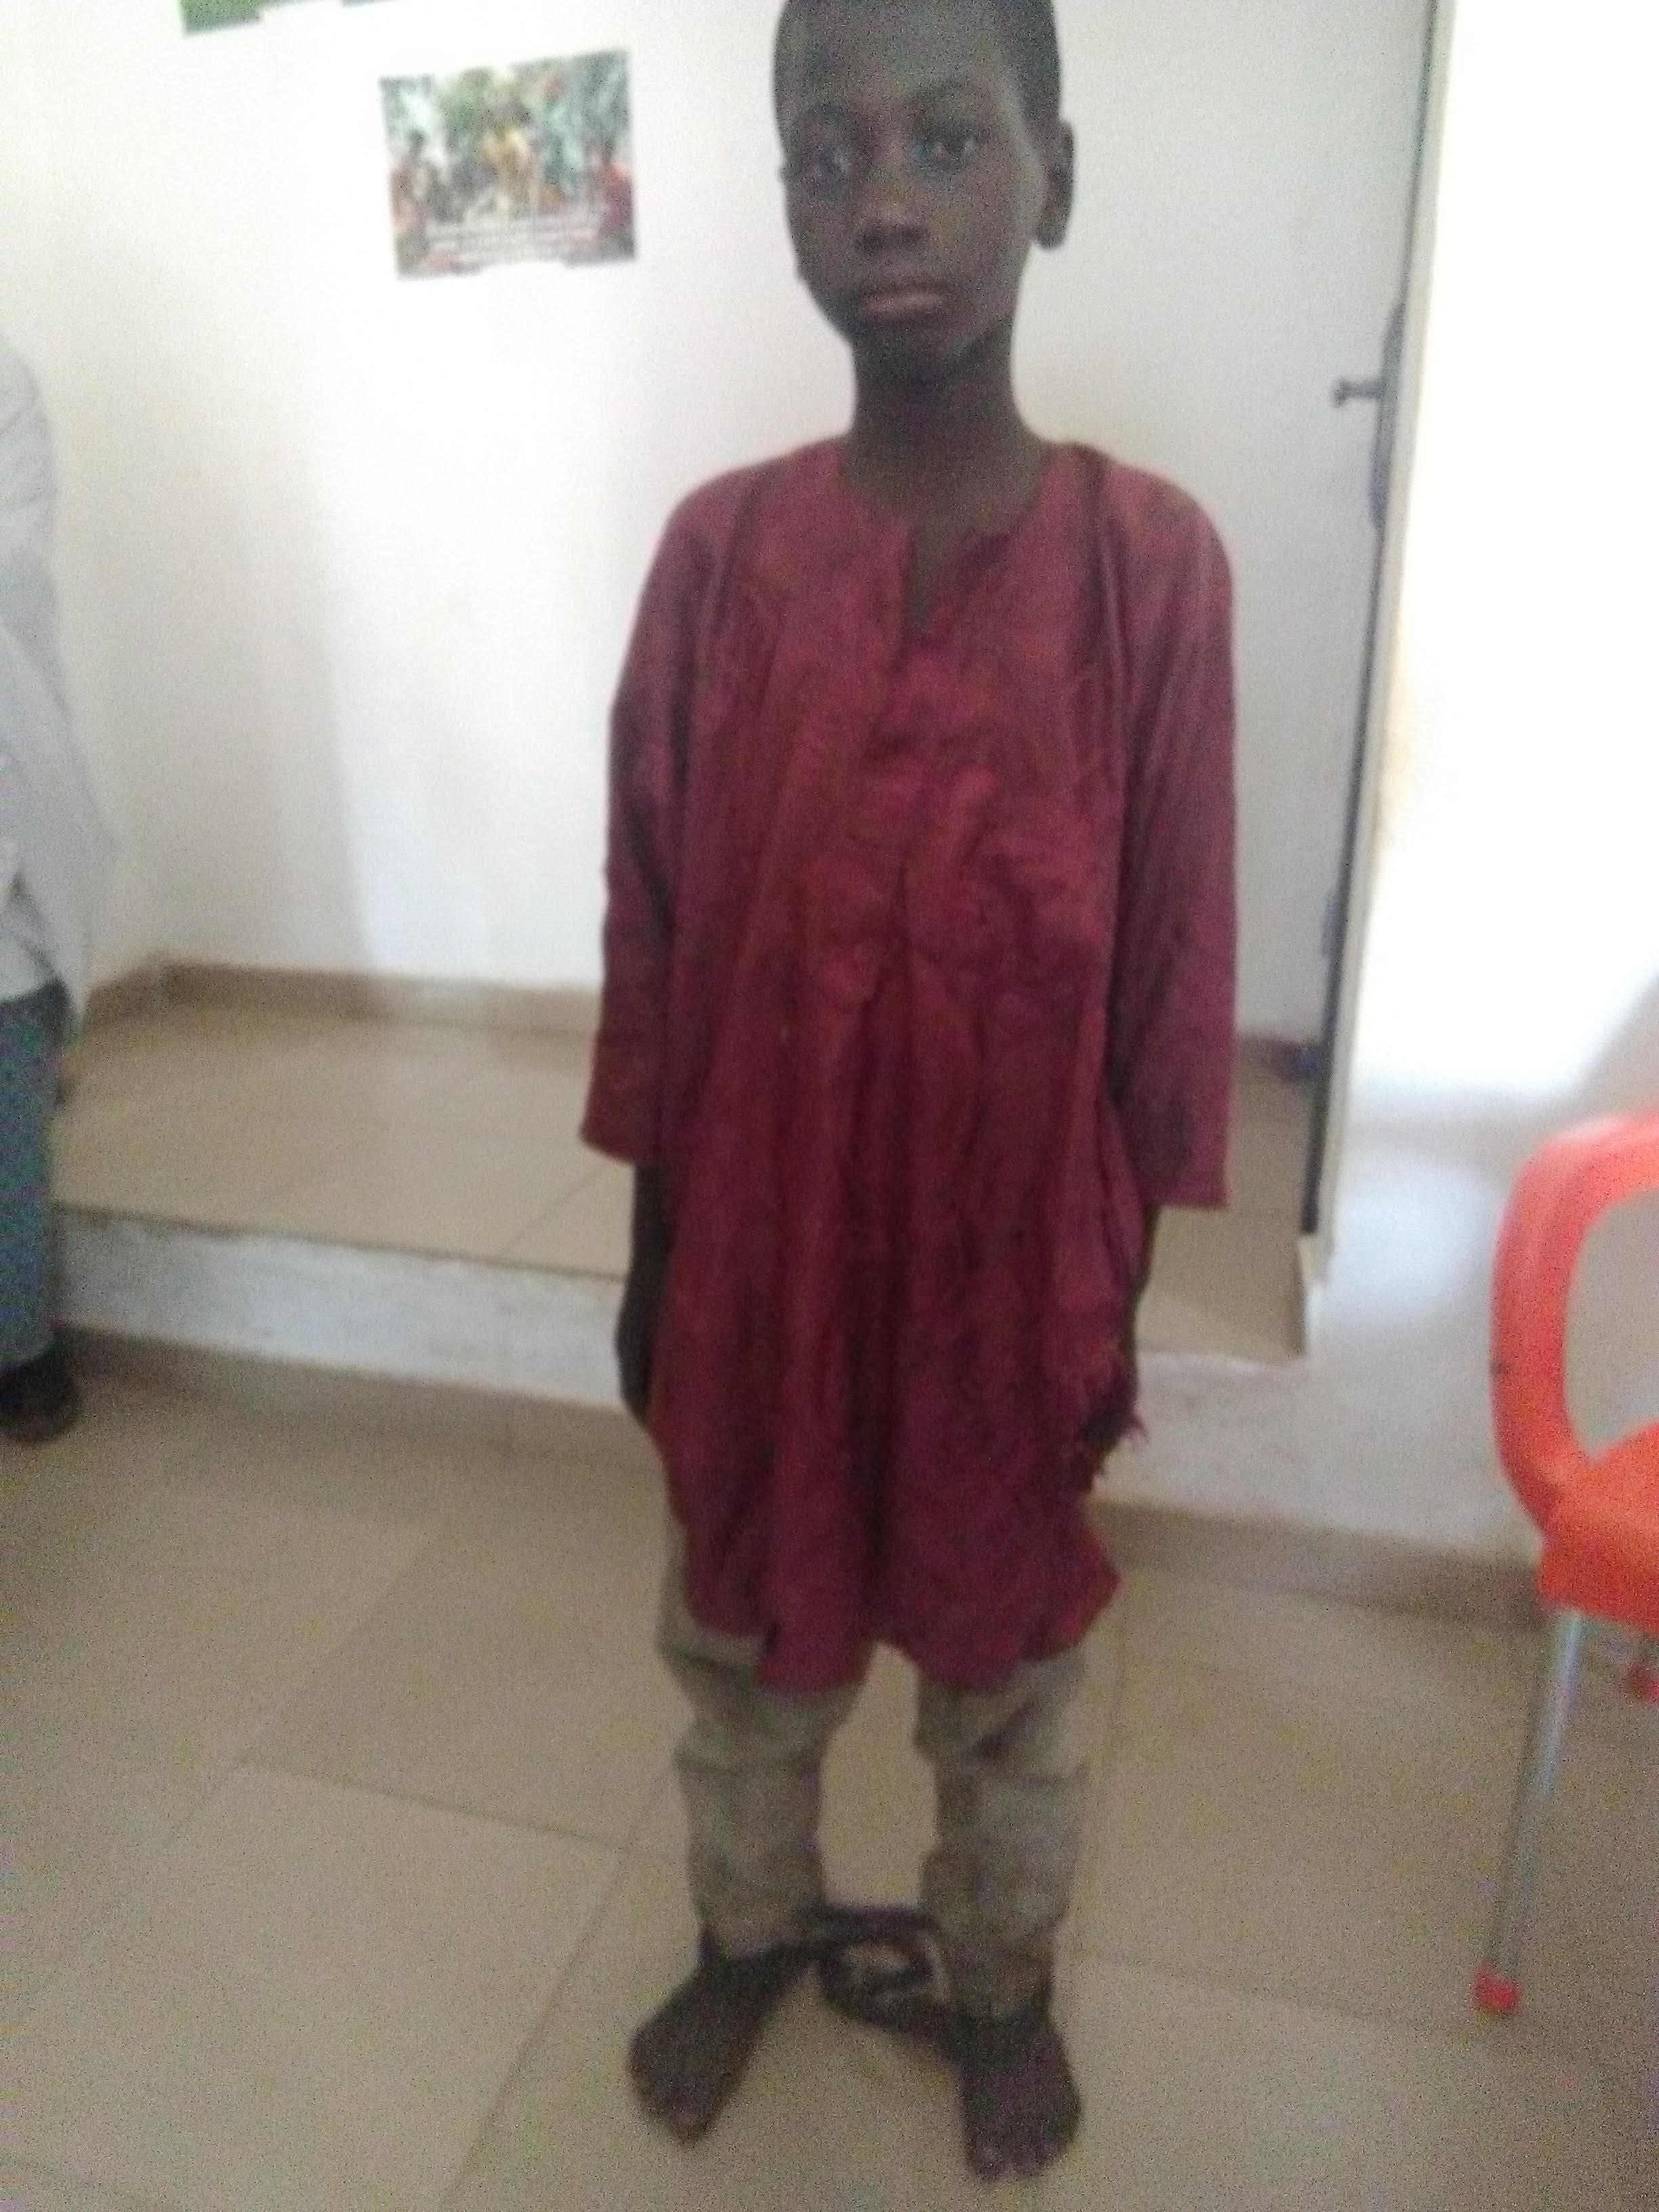 Police Apprehends Man 56, For chaining, lock up Son over refusal to attend school in Niger